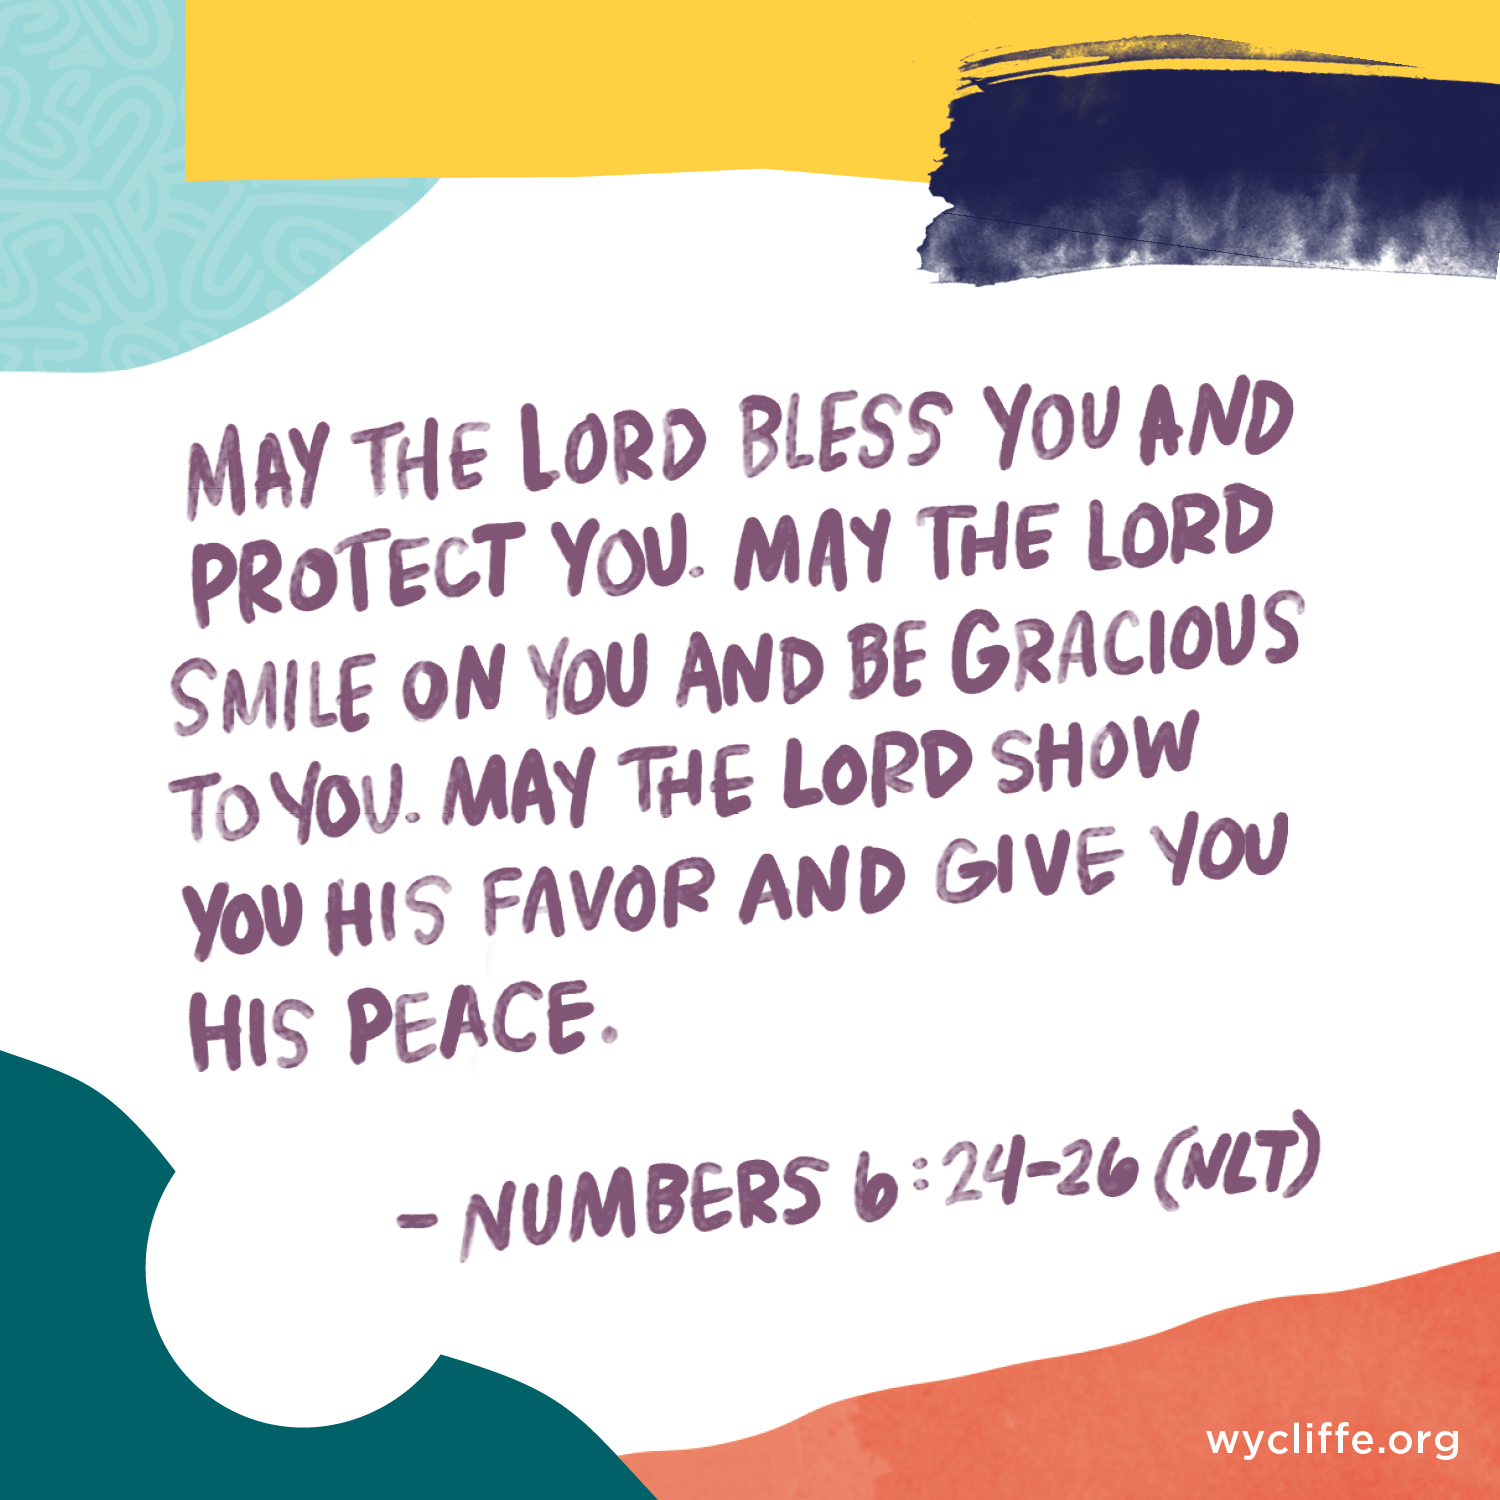 May the Lord bless you and protect you. May the Lord smile on you and be gracious to you. May the Lord show you his favor and give you his peace. - Numbers 6:24-26 (NLT)